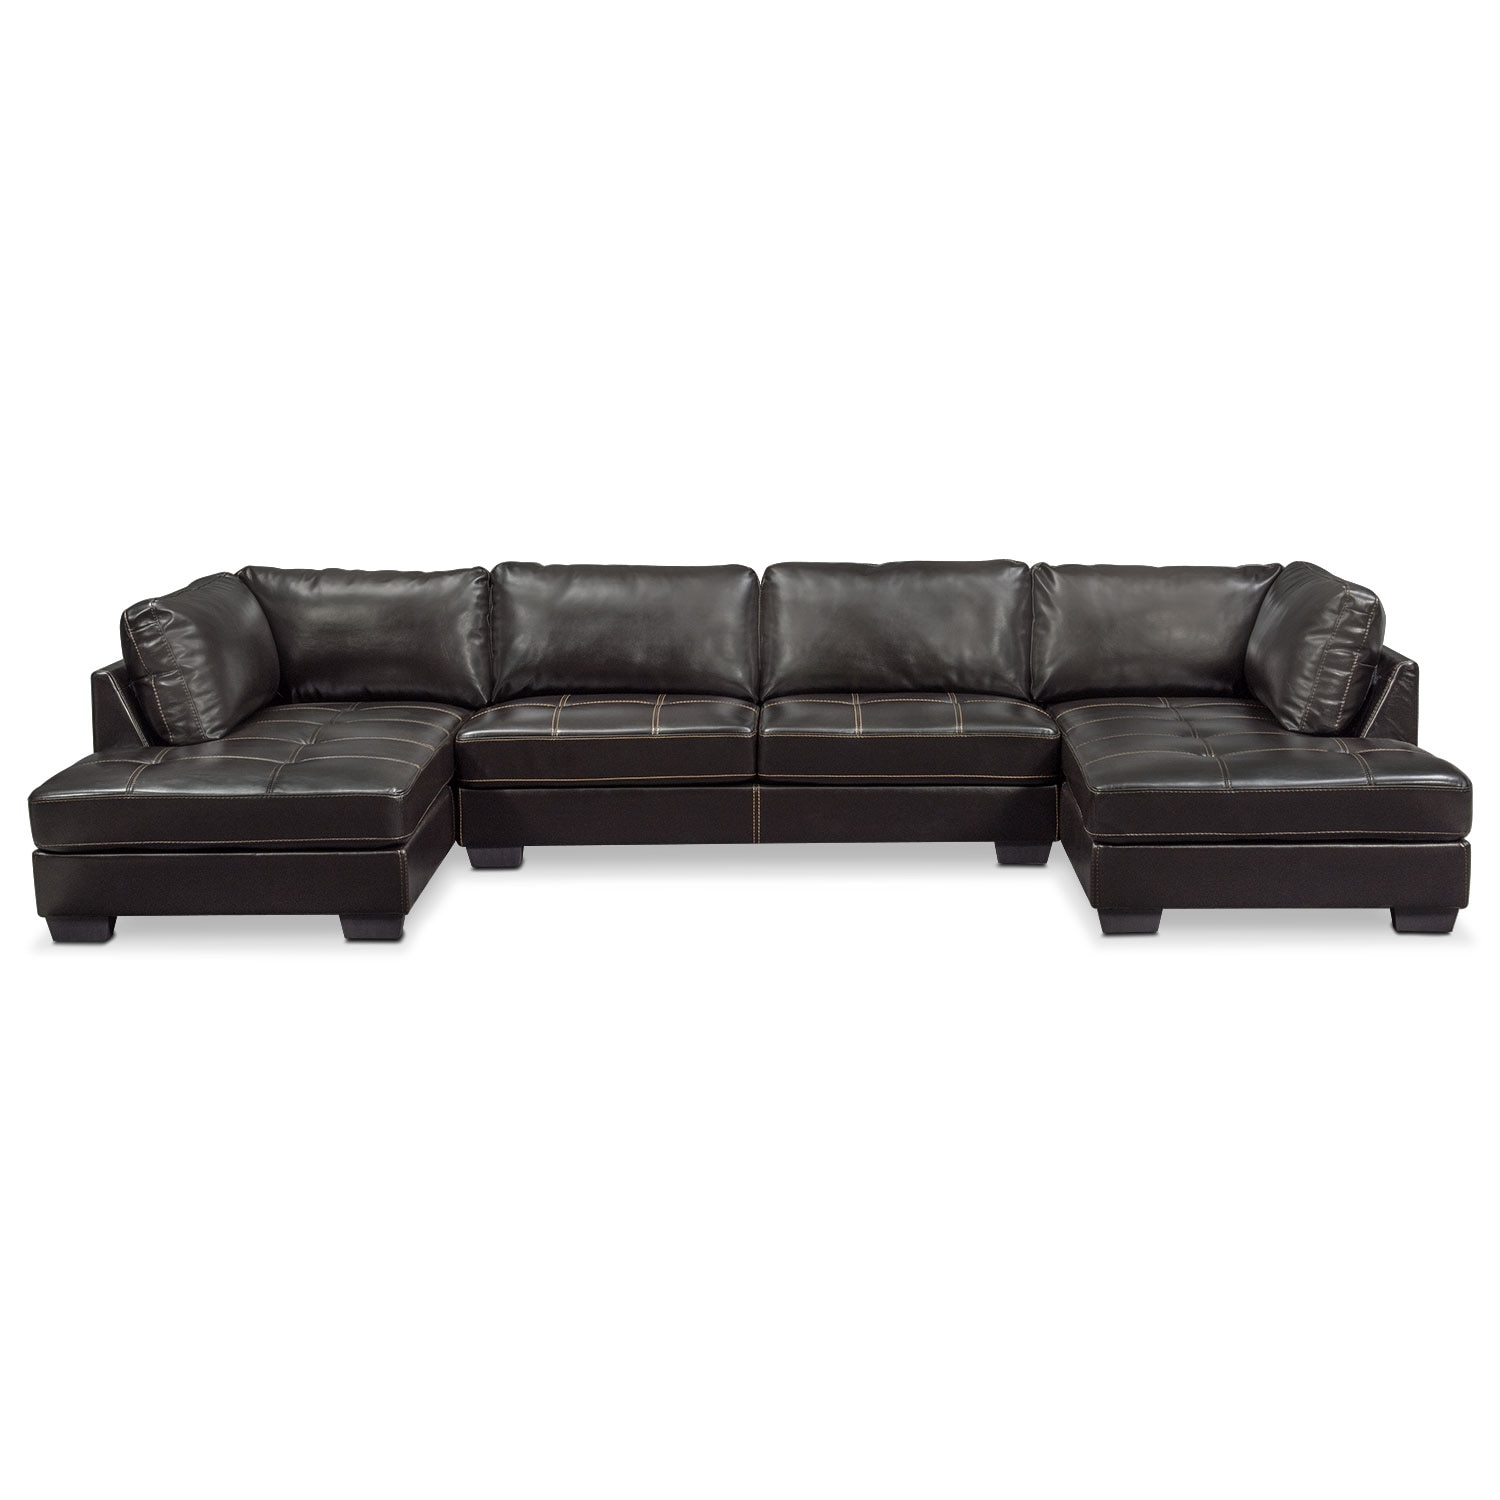 Santana 3 Piece Sectional Black Value City Furniture